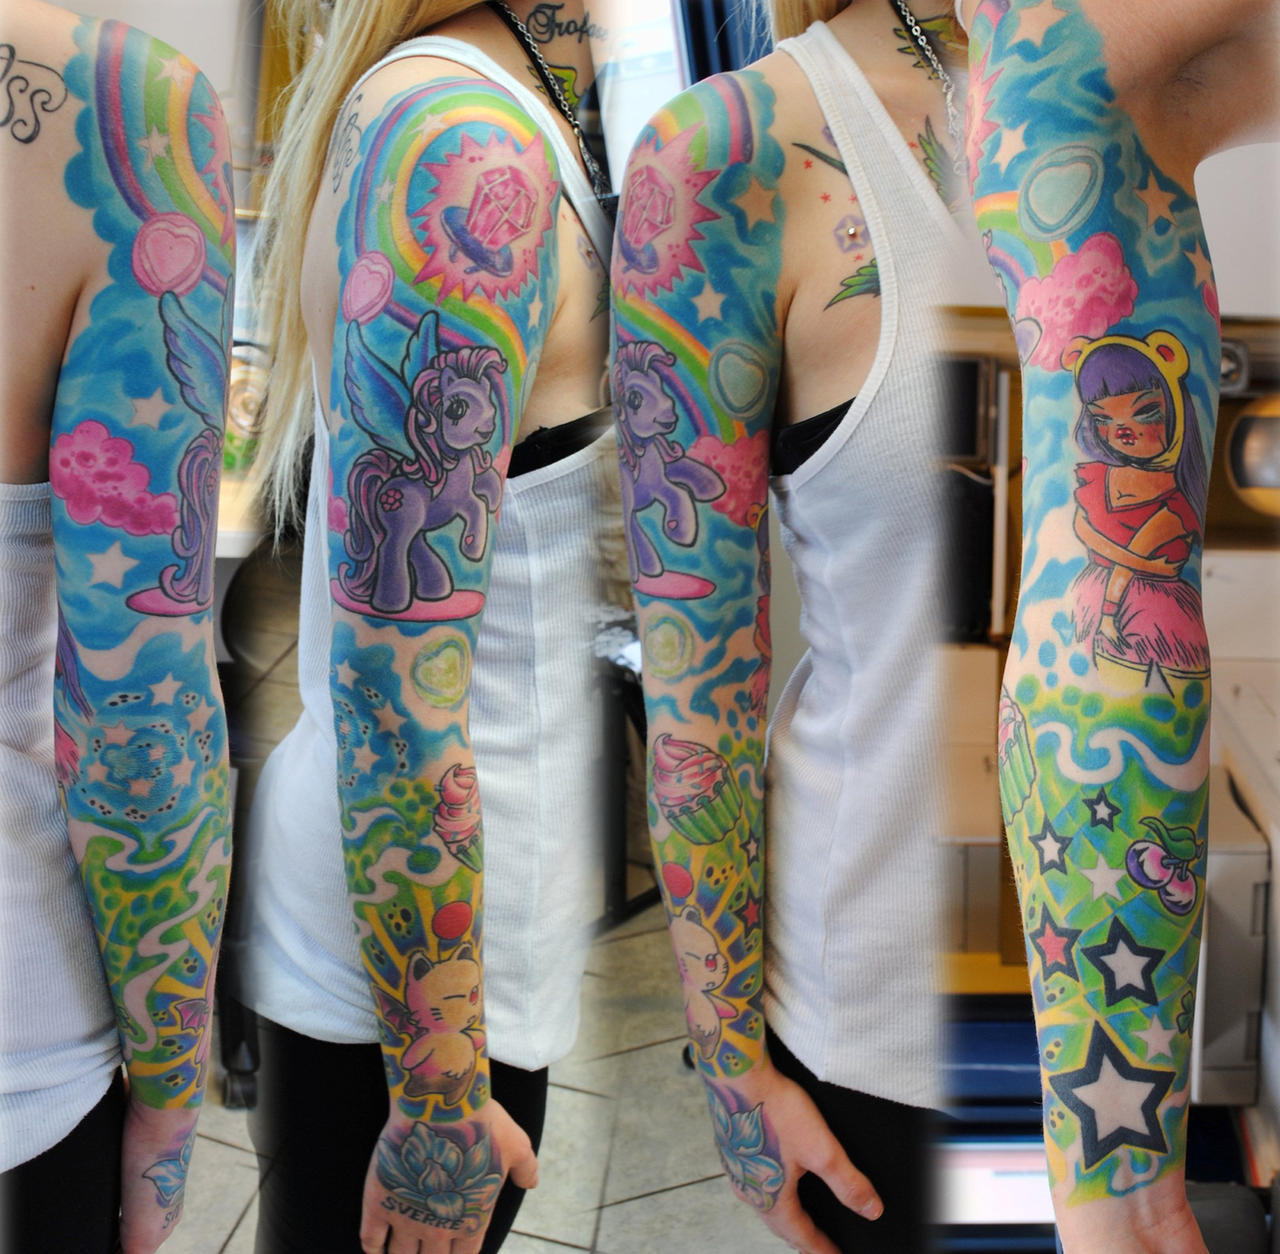 Color Sleeve Tattoos: Full Sleeve In Colors Girl By Gettattoo On DeviantArt